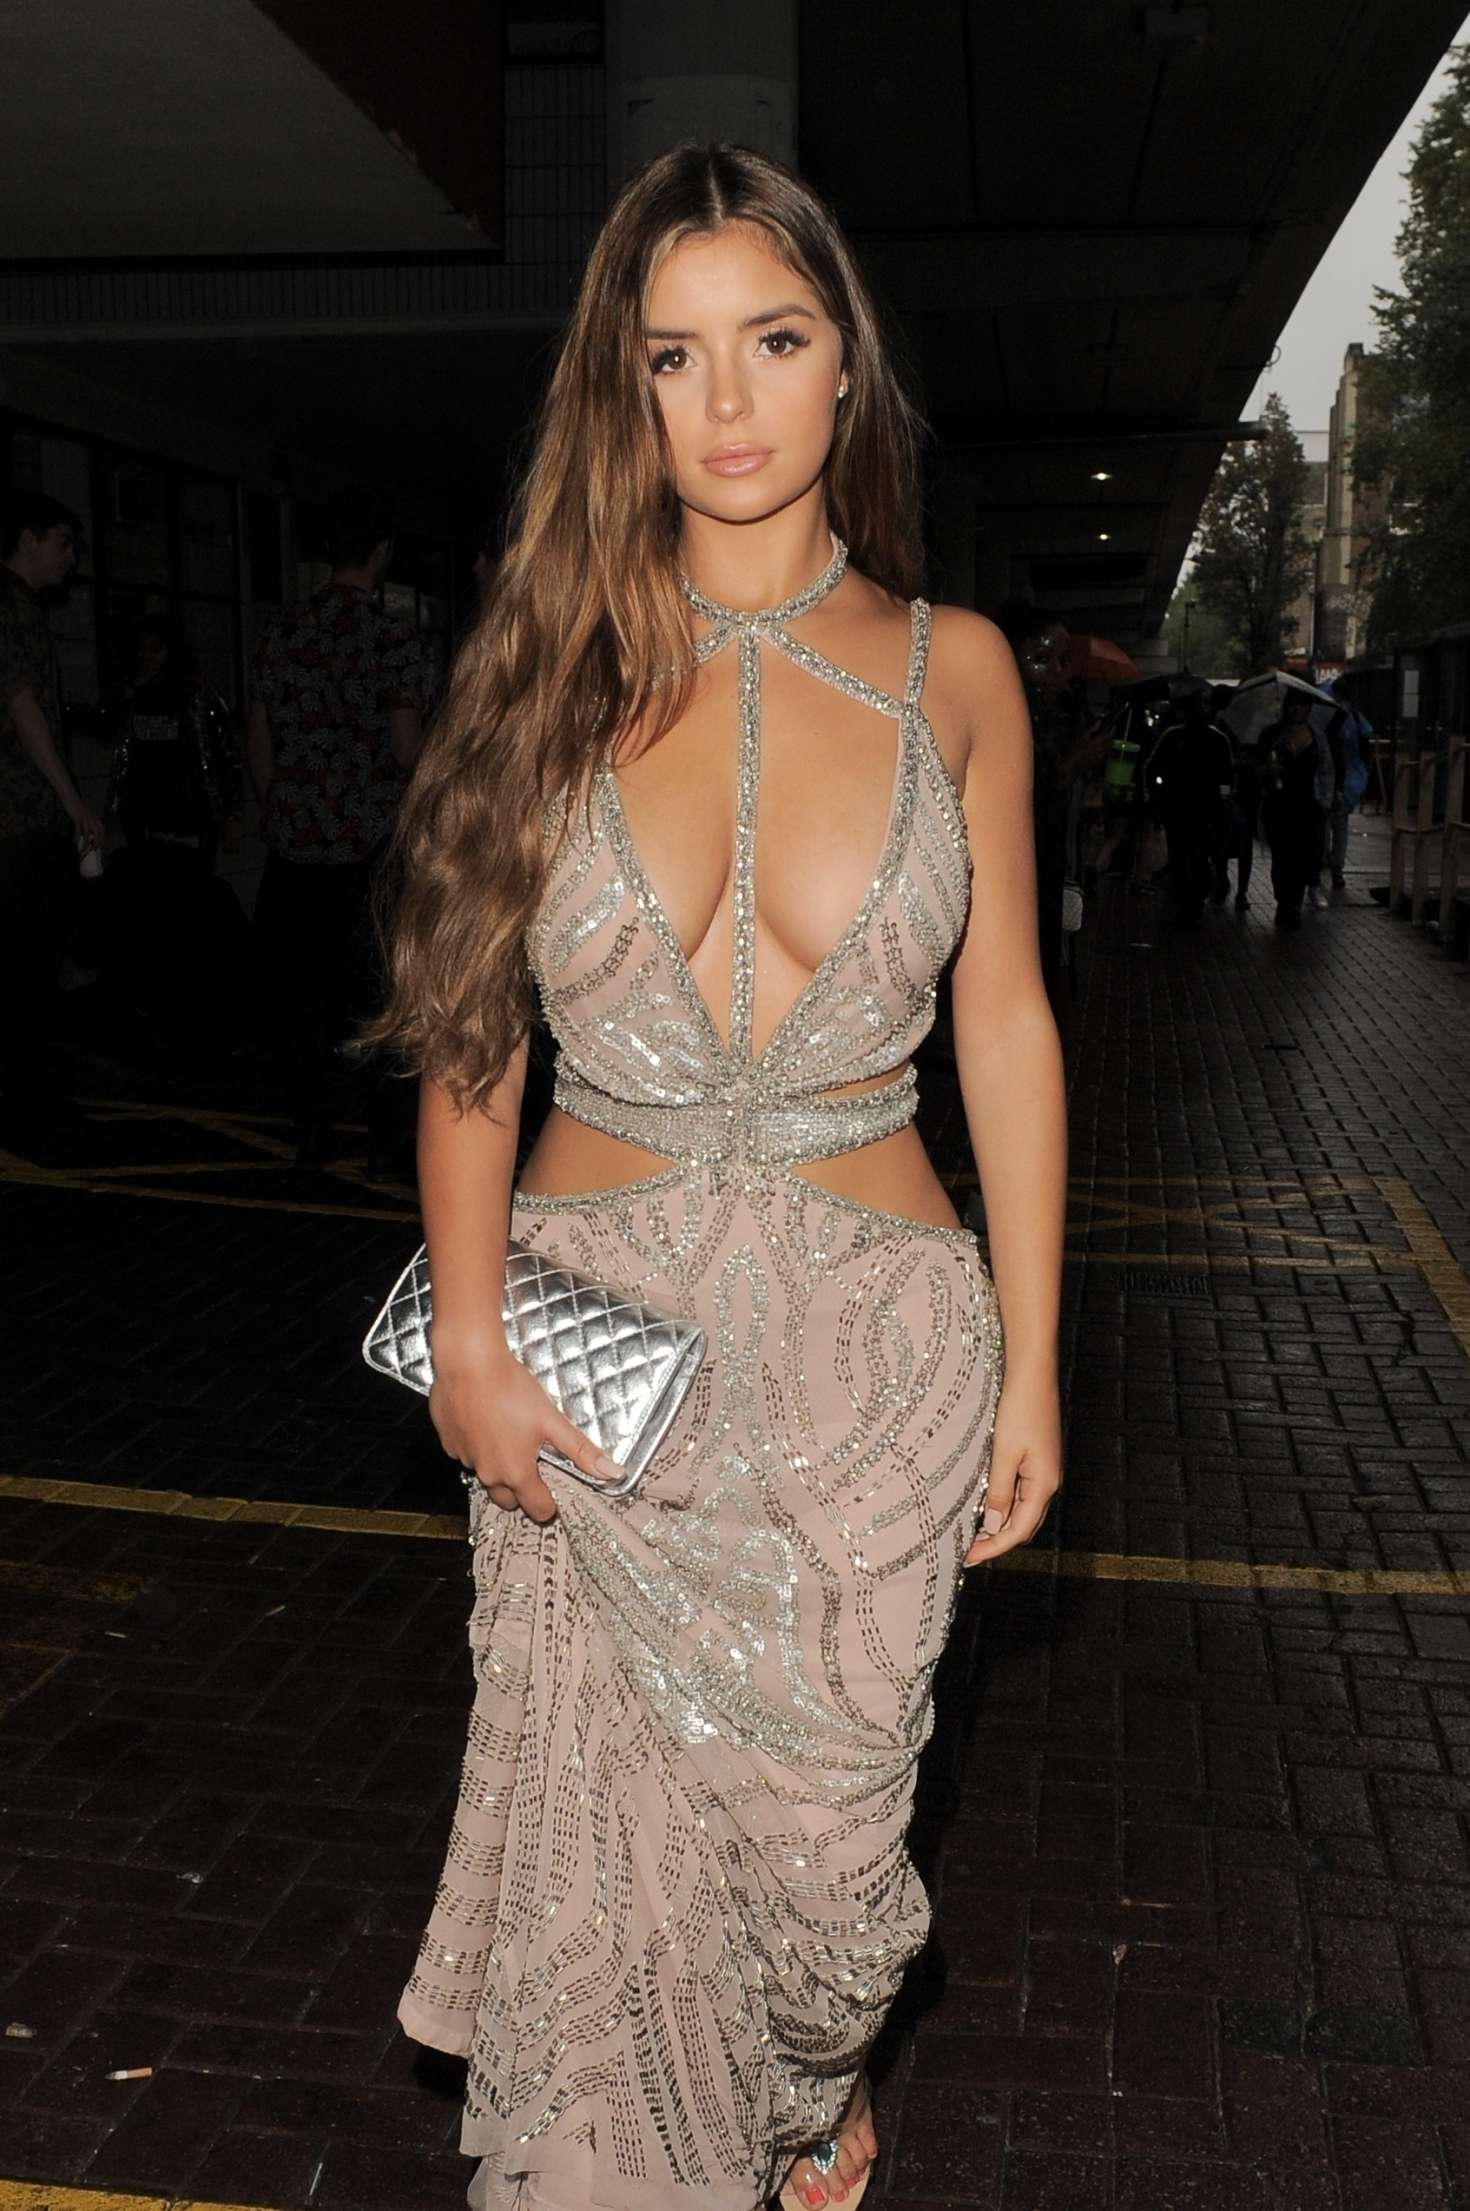 Demi Rose 2018 : Demi Rose: Arrives at her brand new Demi Rose App launch party -08